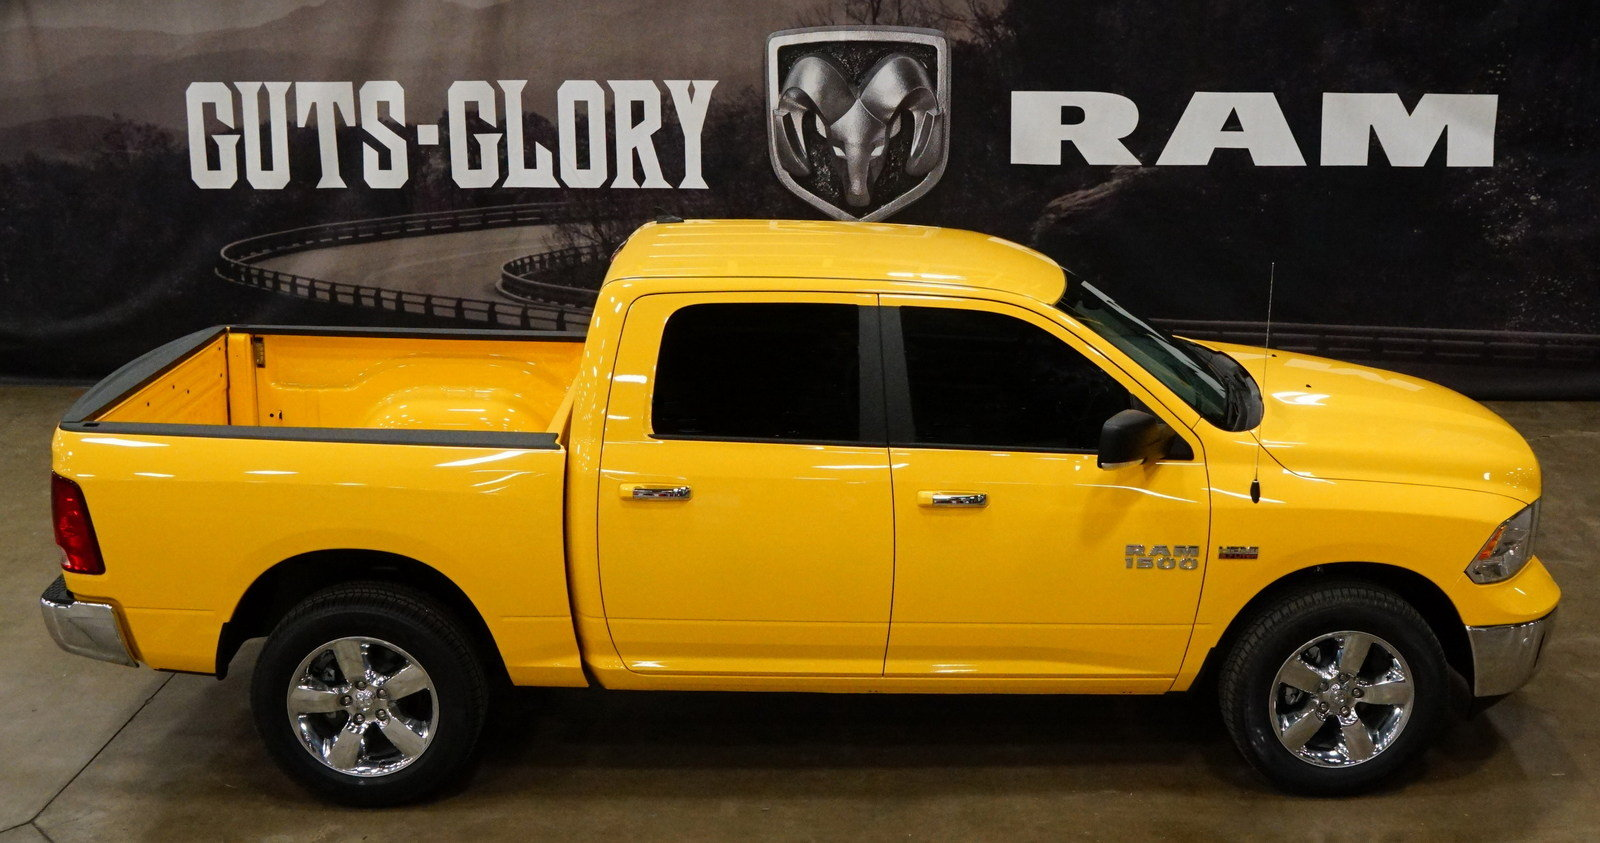 2016 ram 1500 yellow rose of texas edition picture 669735 truck review top speed. Black Bedroom Furniture Sets. Home Design Ideas